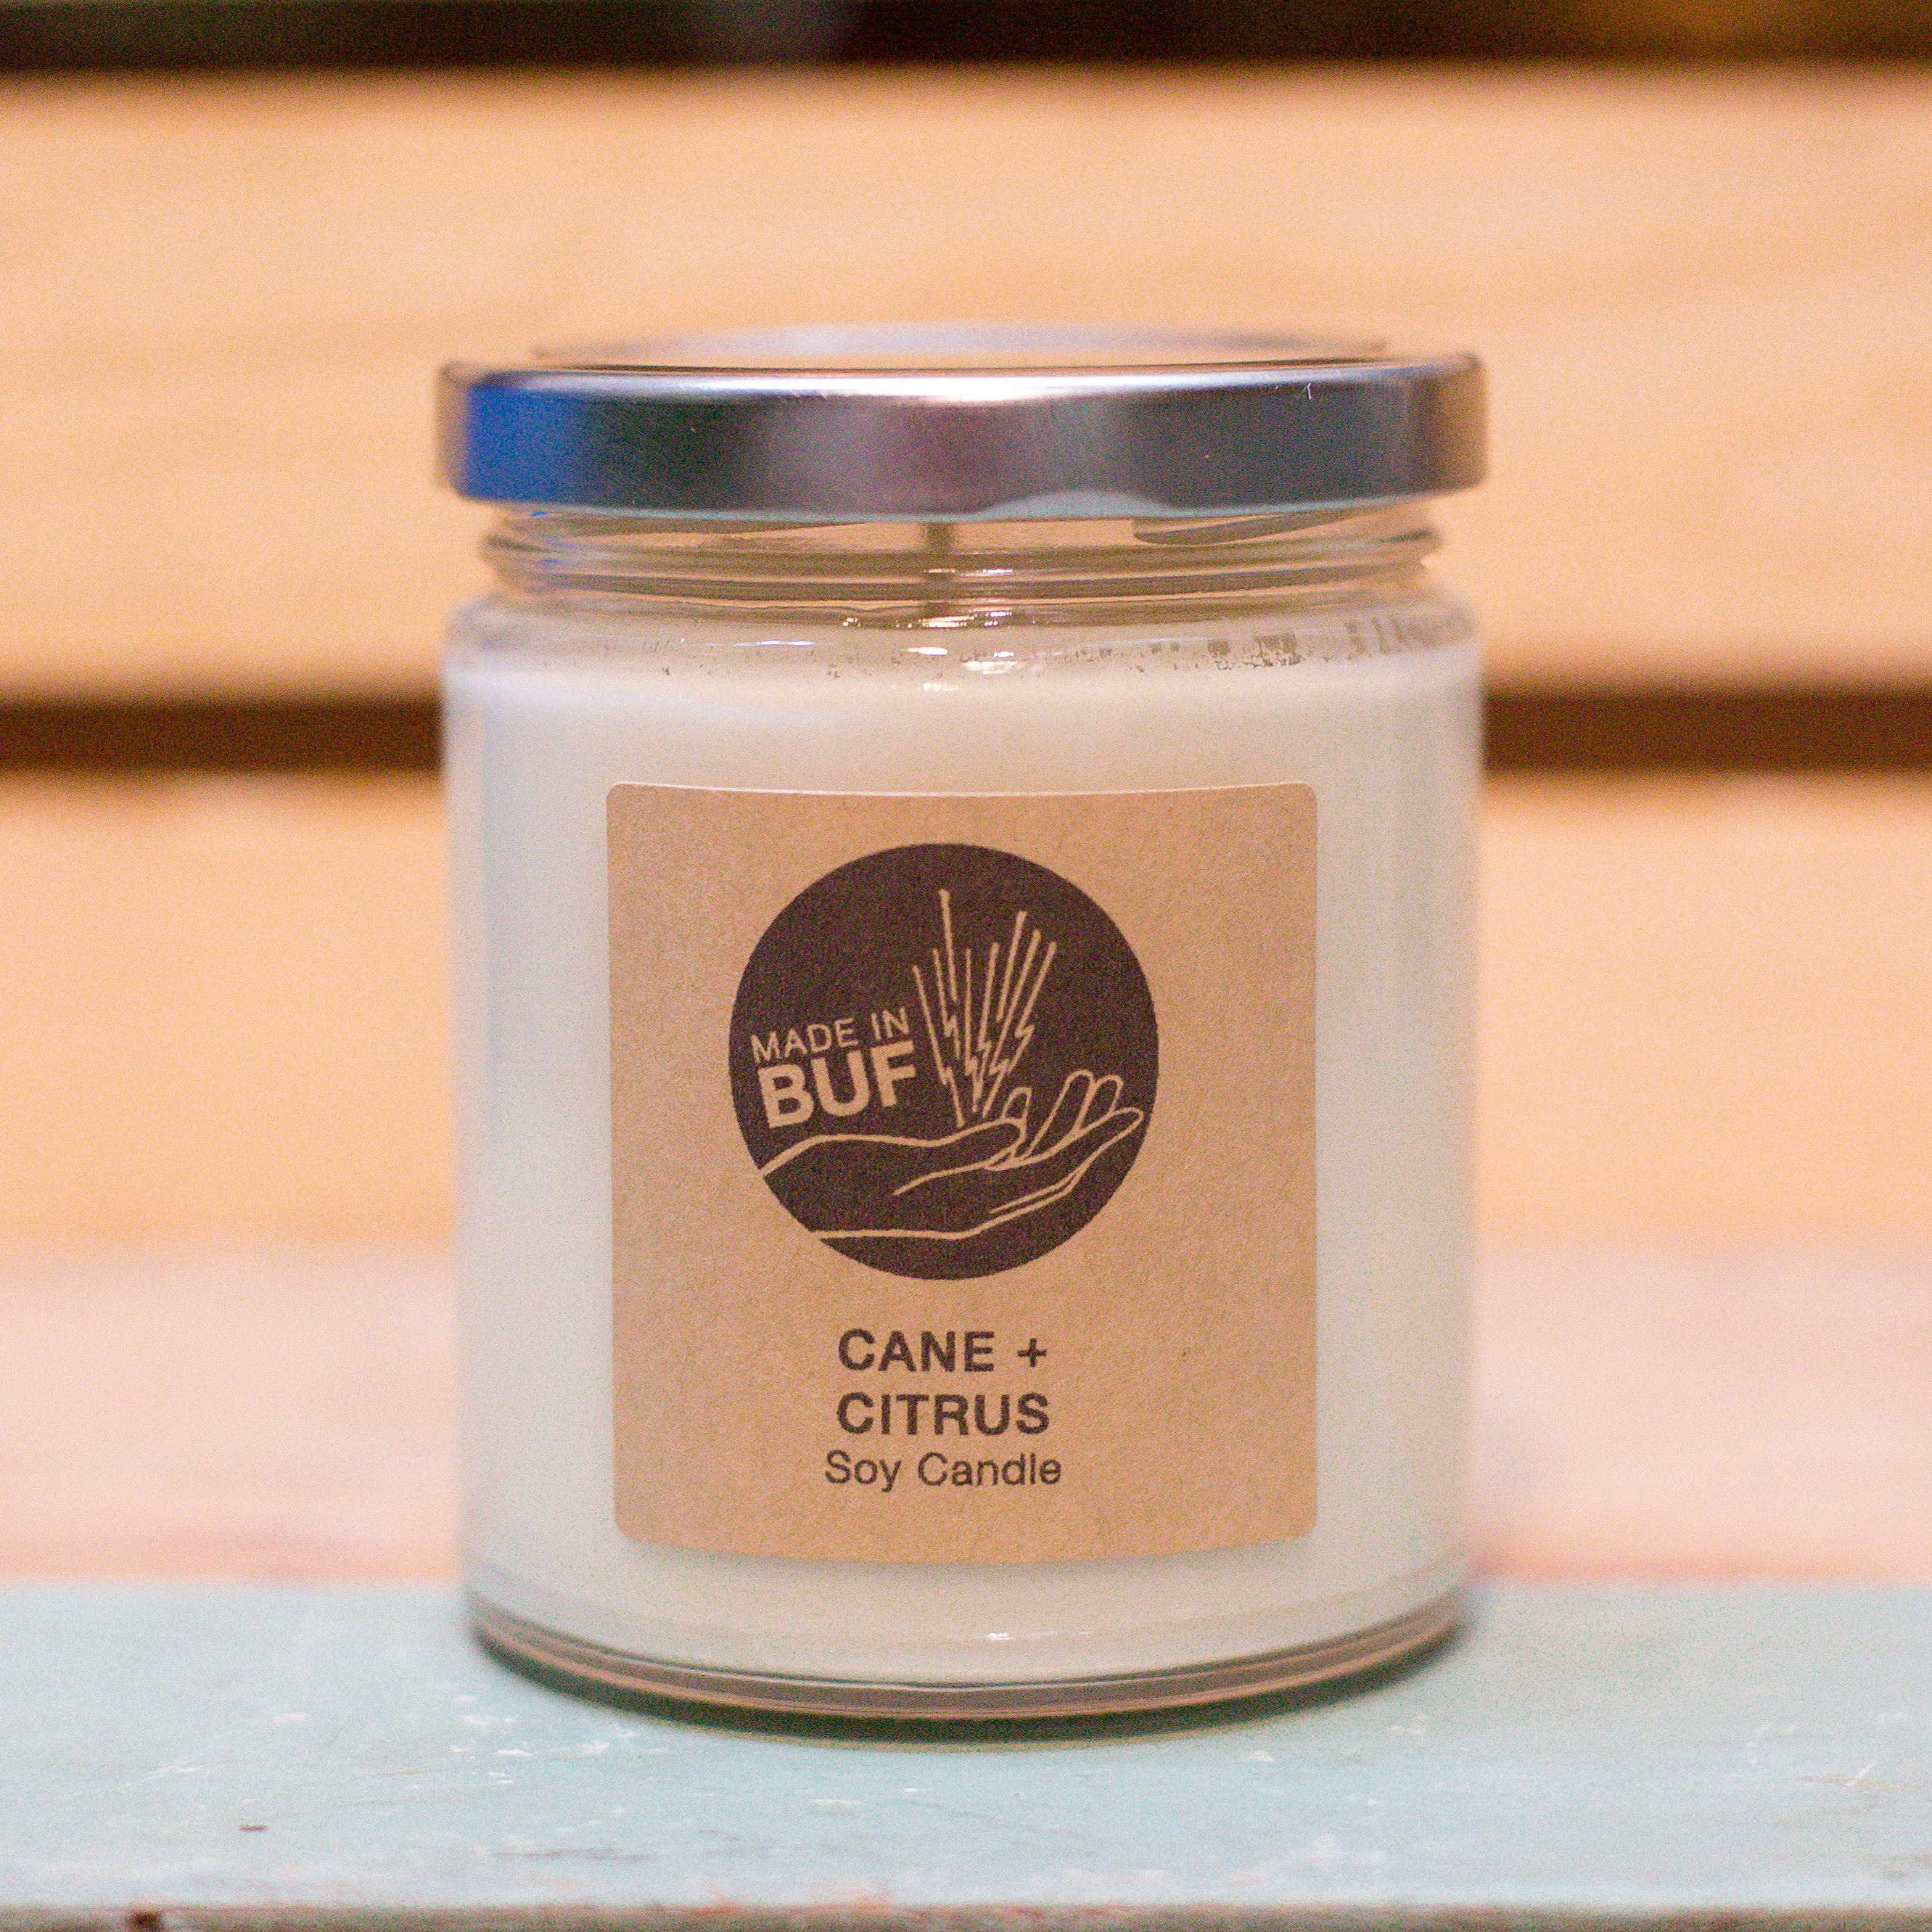 Cane and citrus soy candle made in buffalo ny